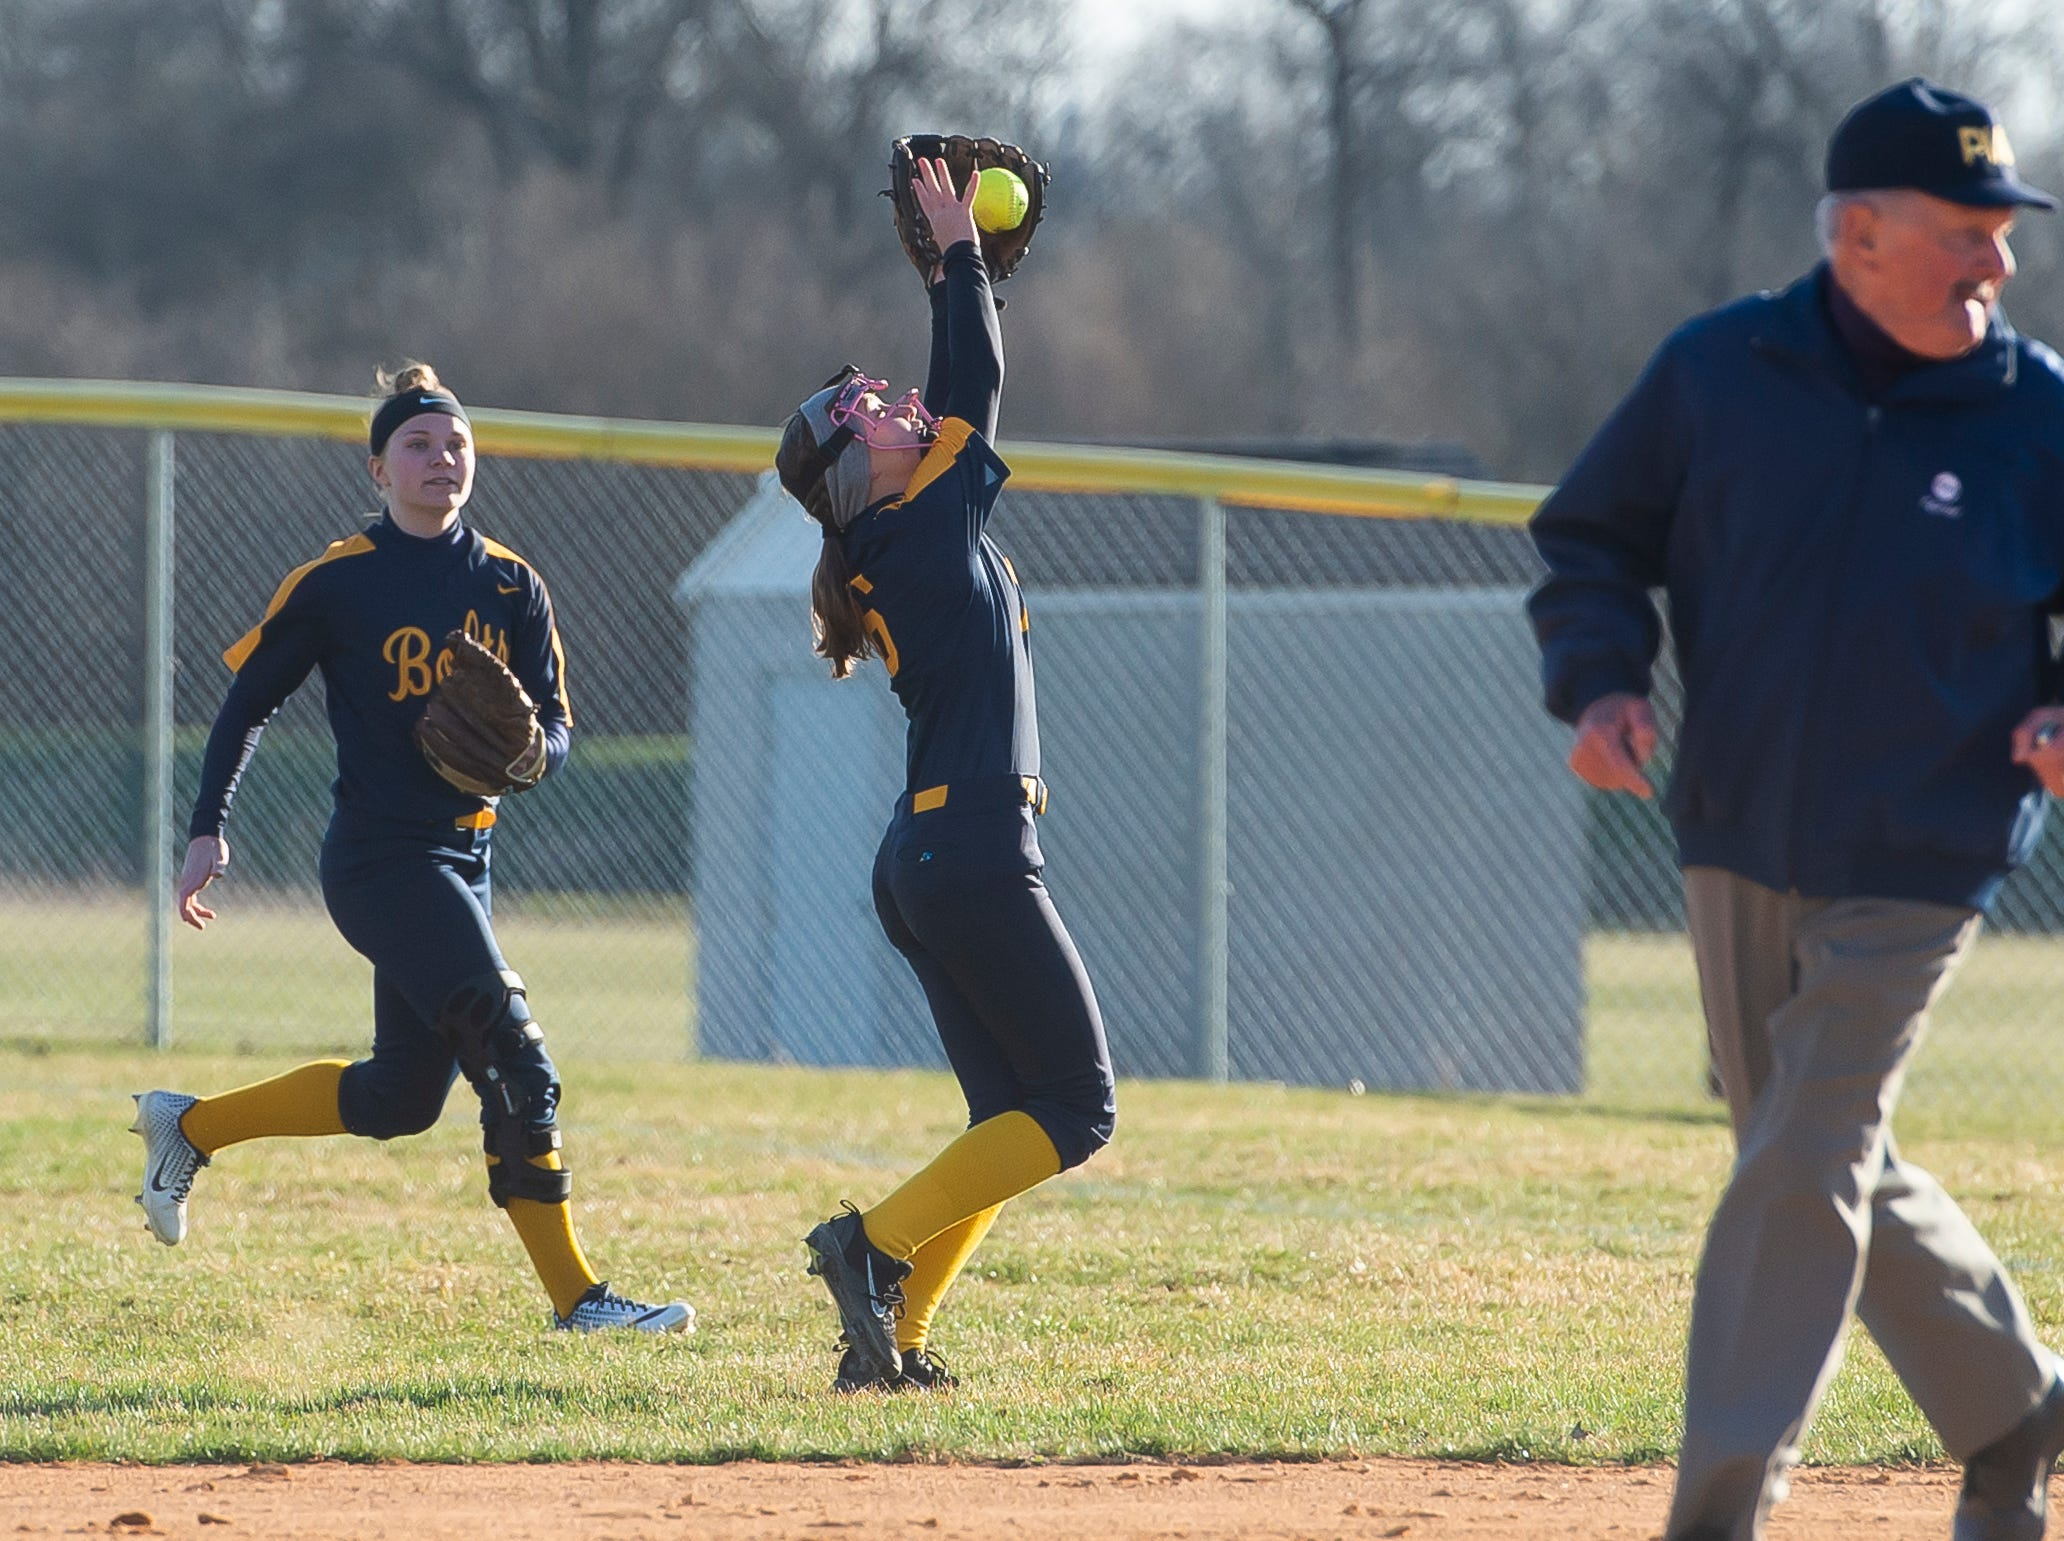 Littlestown's Carter Clabaugh bobbles the ball before securing a catch on a pop-up during a YAIAA softball game against Gettysburg on Monday, April 1, 2019. The Bolts won 10-4.